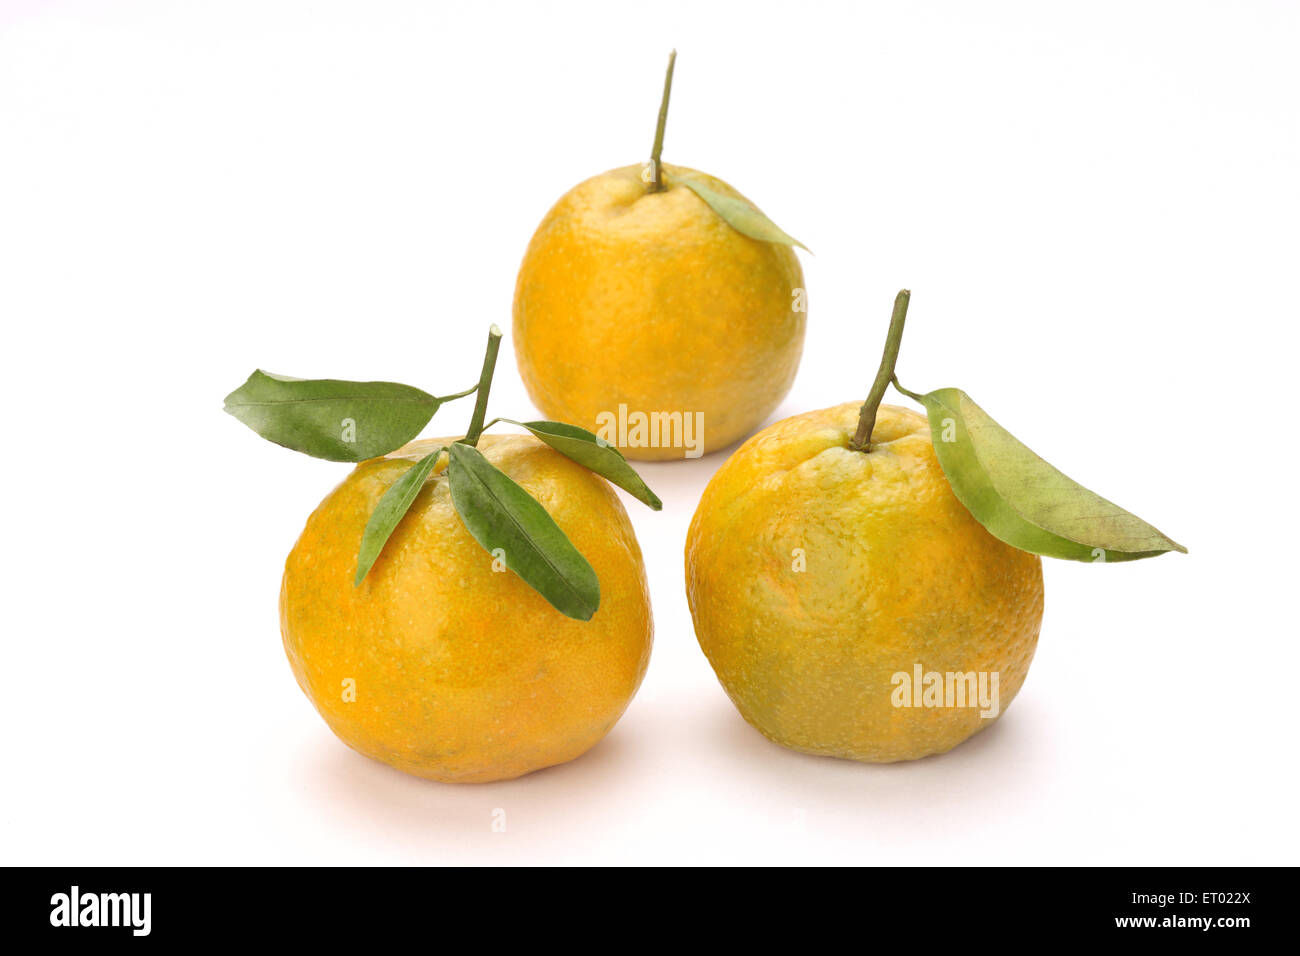 Three Oranges with green leaves Citrus reticulate - Stock Image